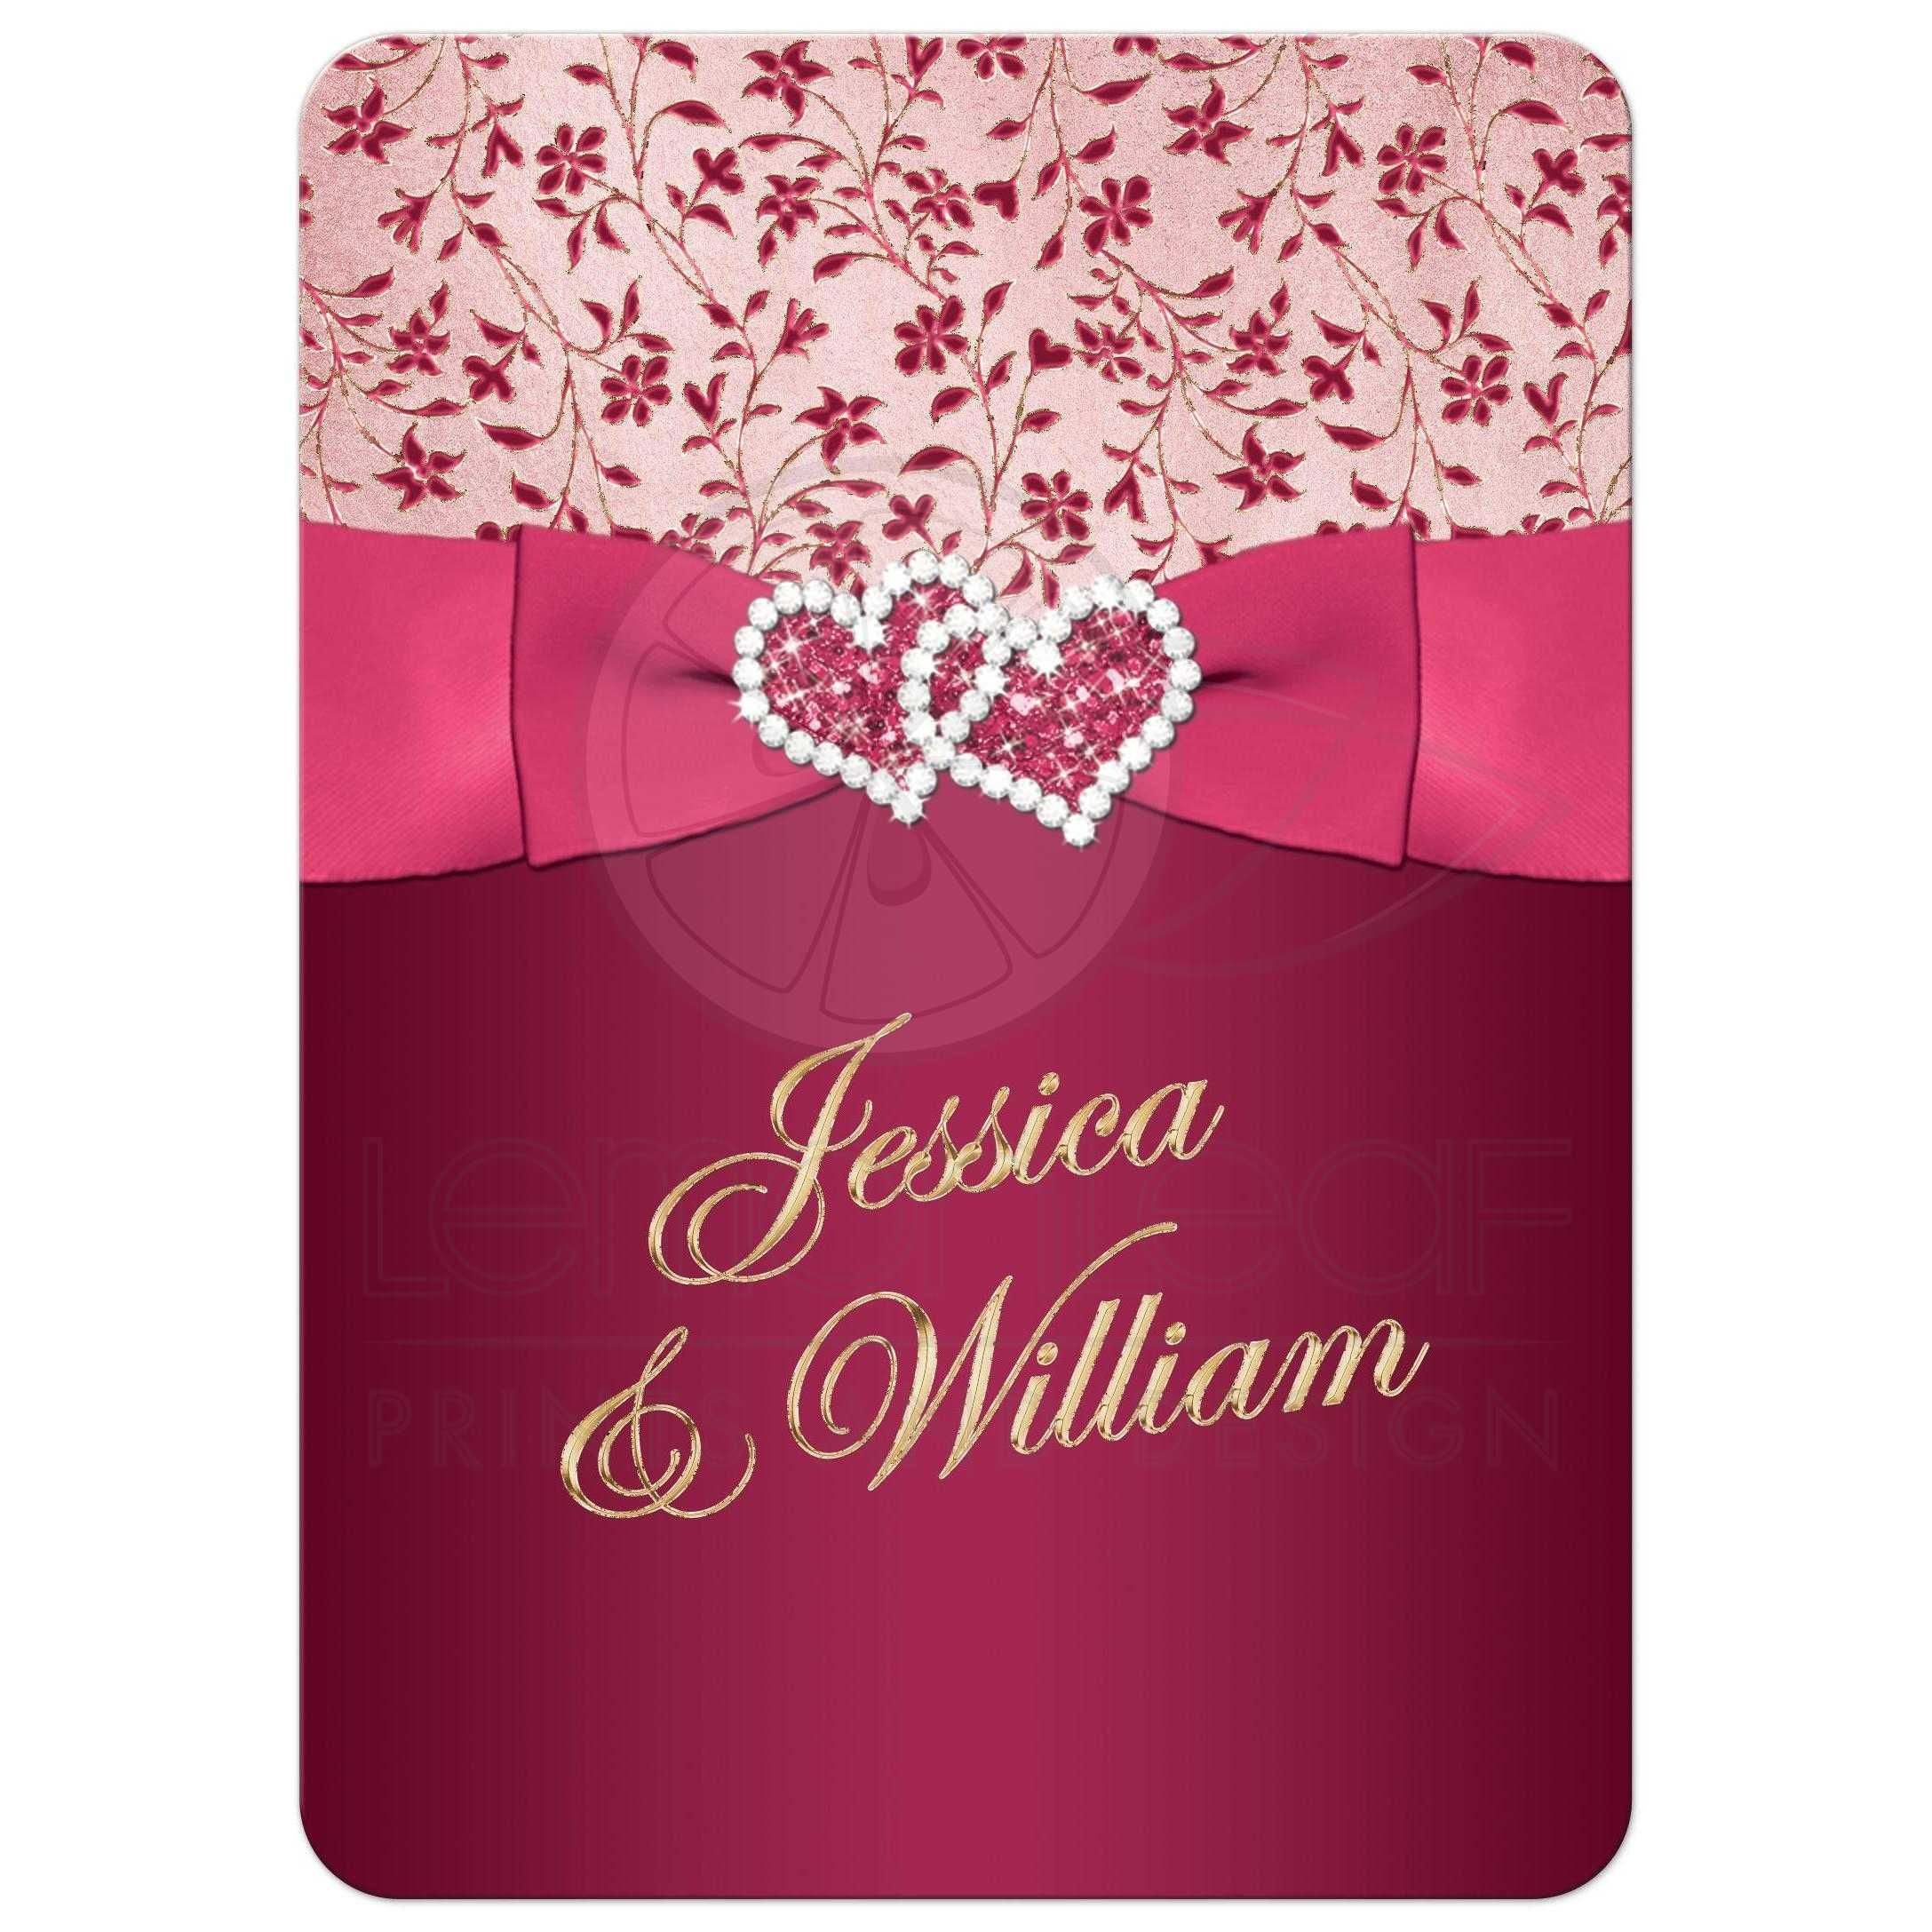 Wedding Invitation Burgundy Pink Rose Gold Fl Printed Ribbon Joined Hearts